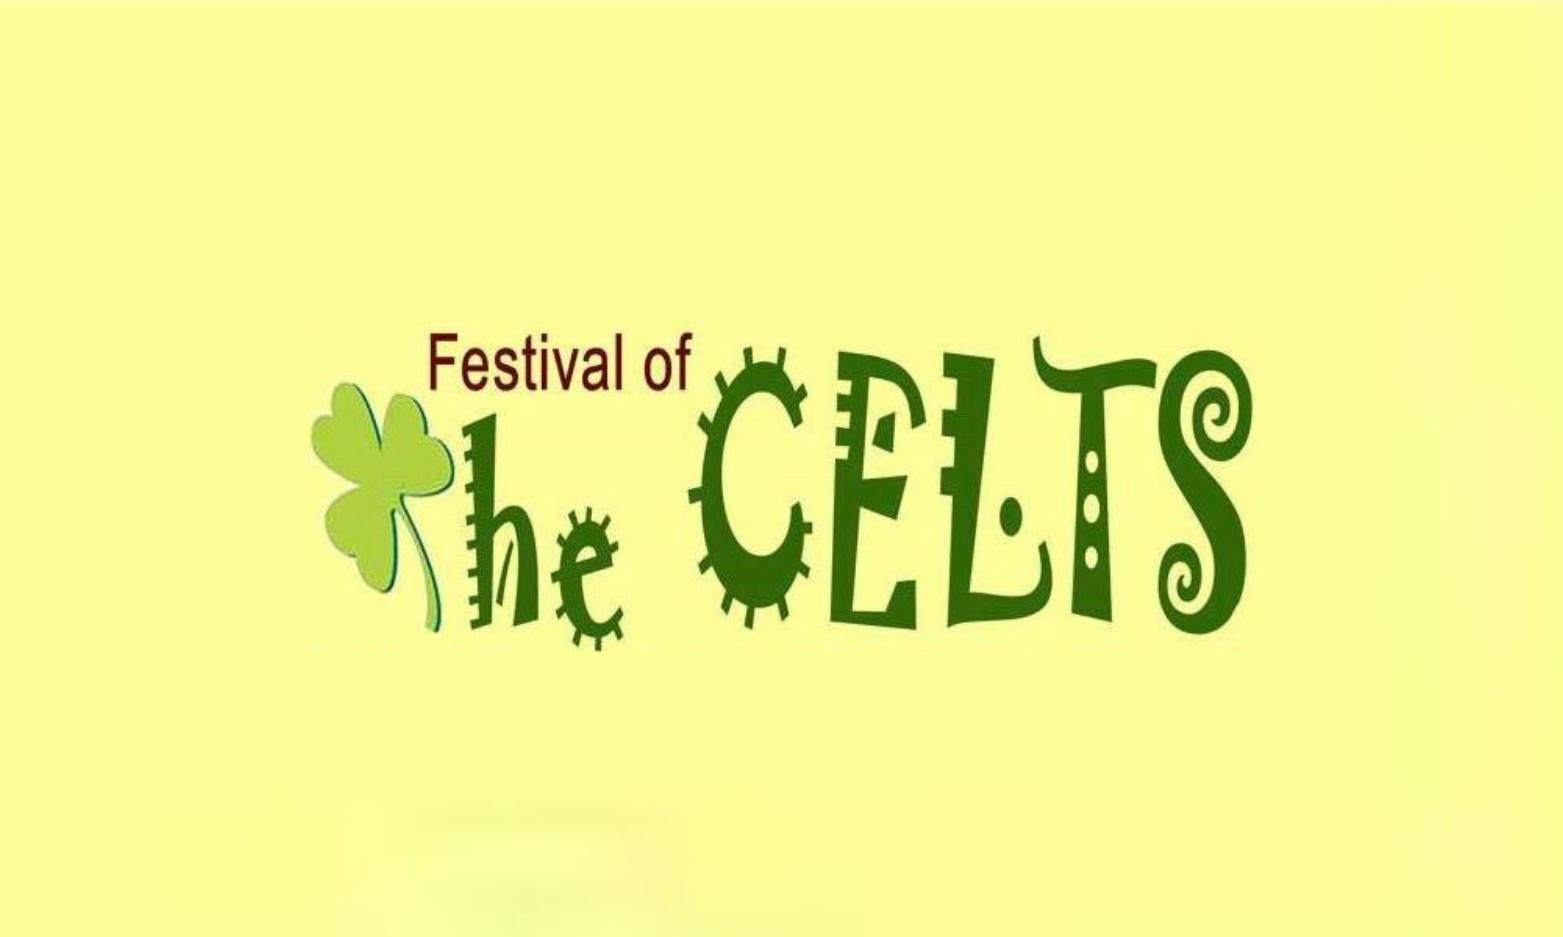 Festival of THE CELTS